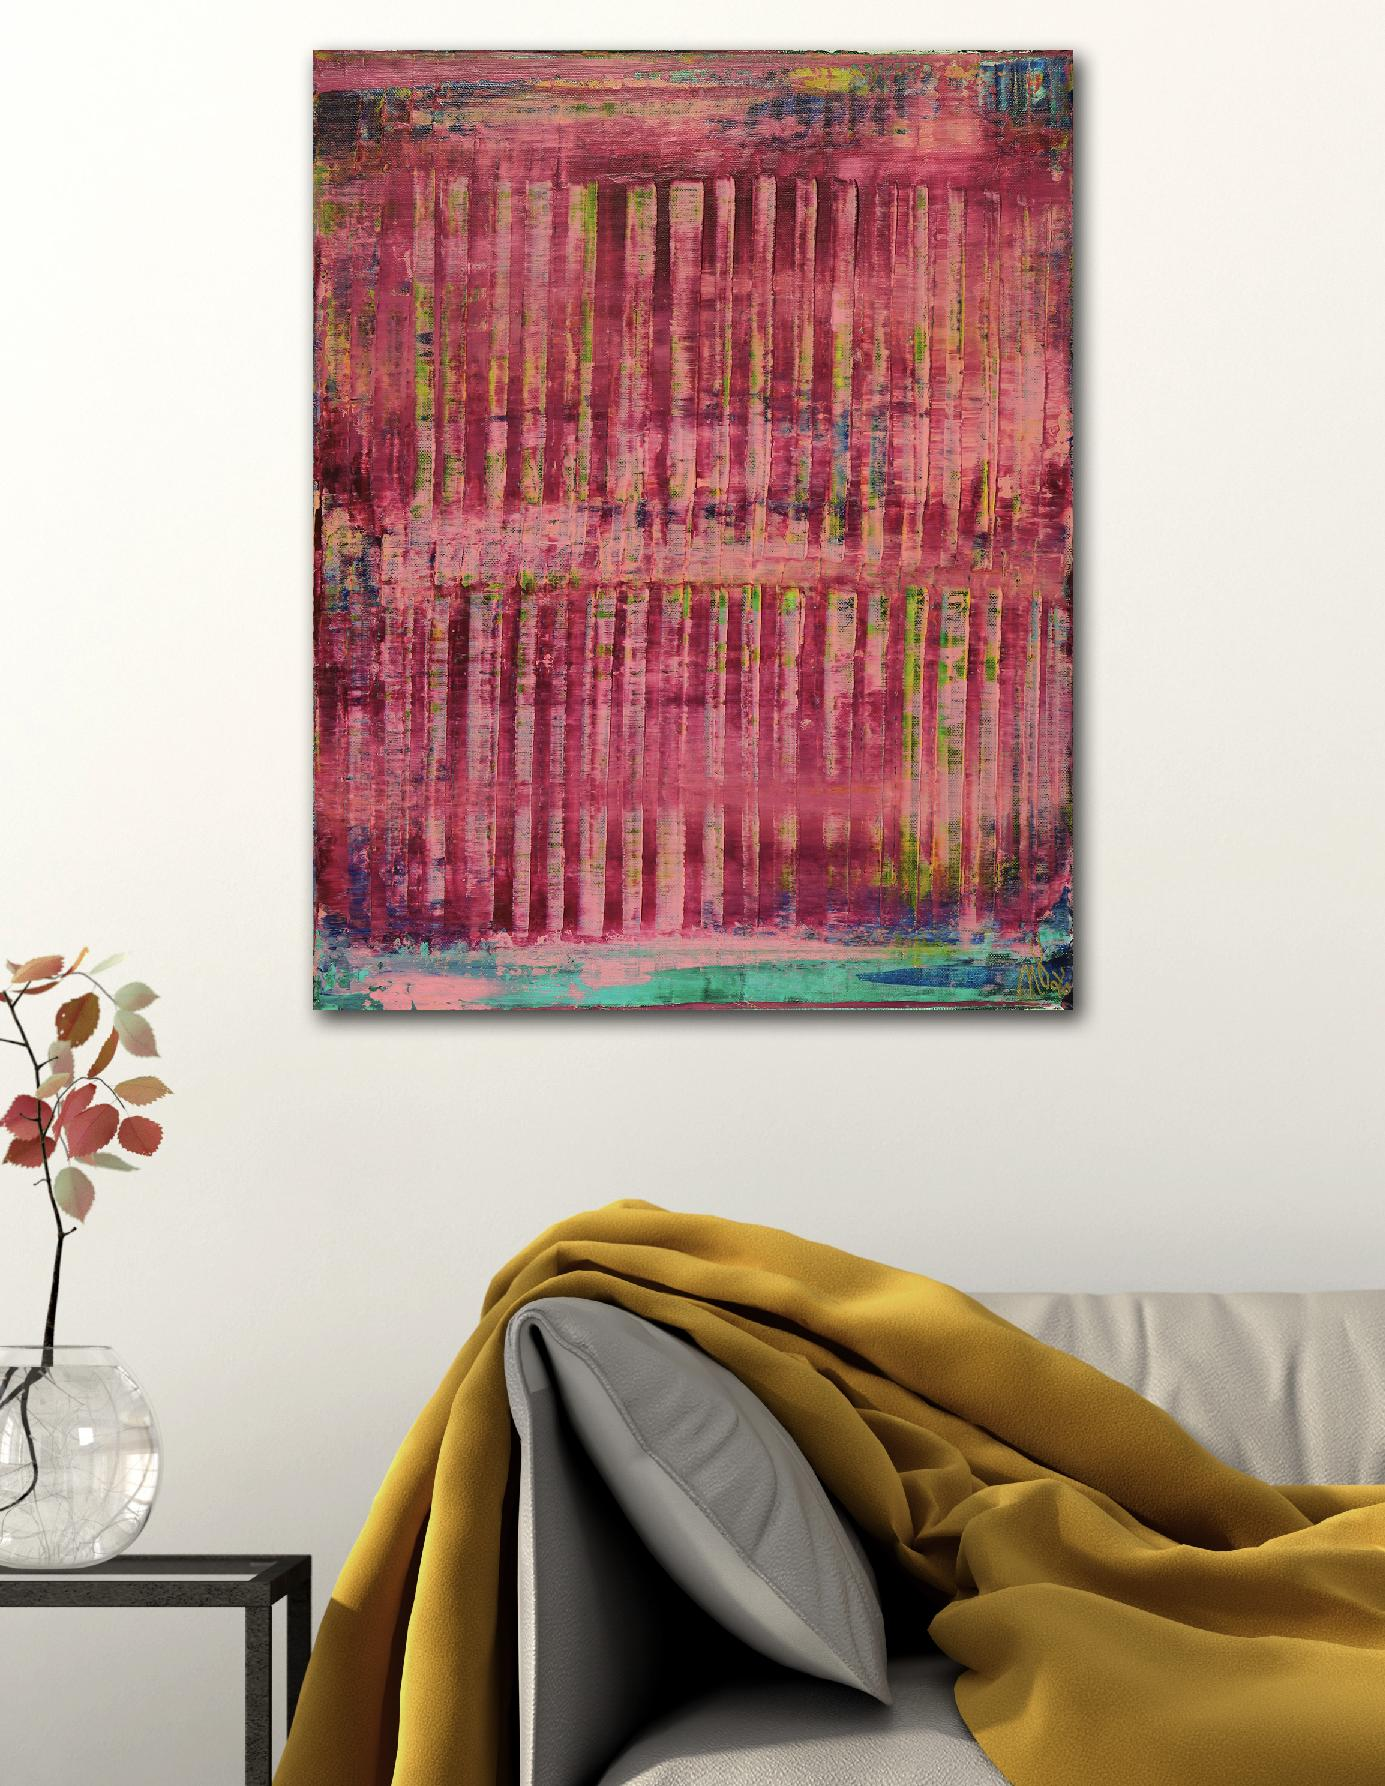 Room View - Pink spectra and lights 2 (2020) by Nestor Toro - SOLD